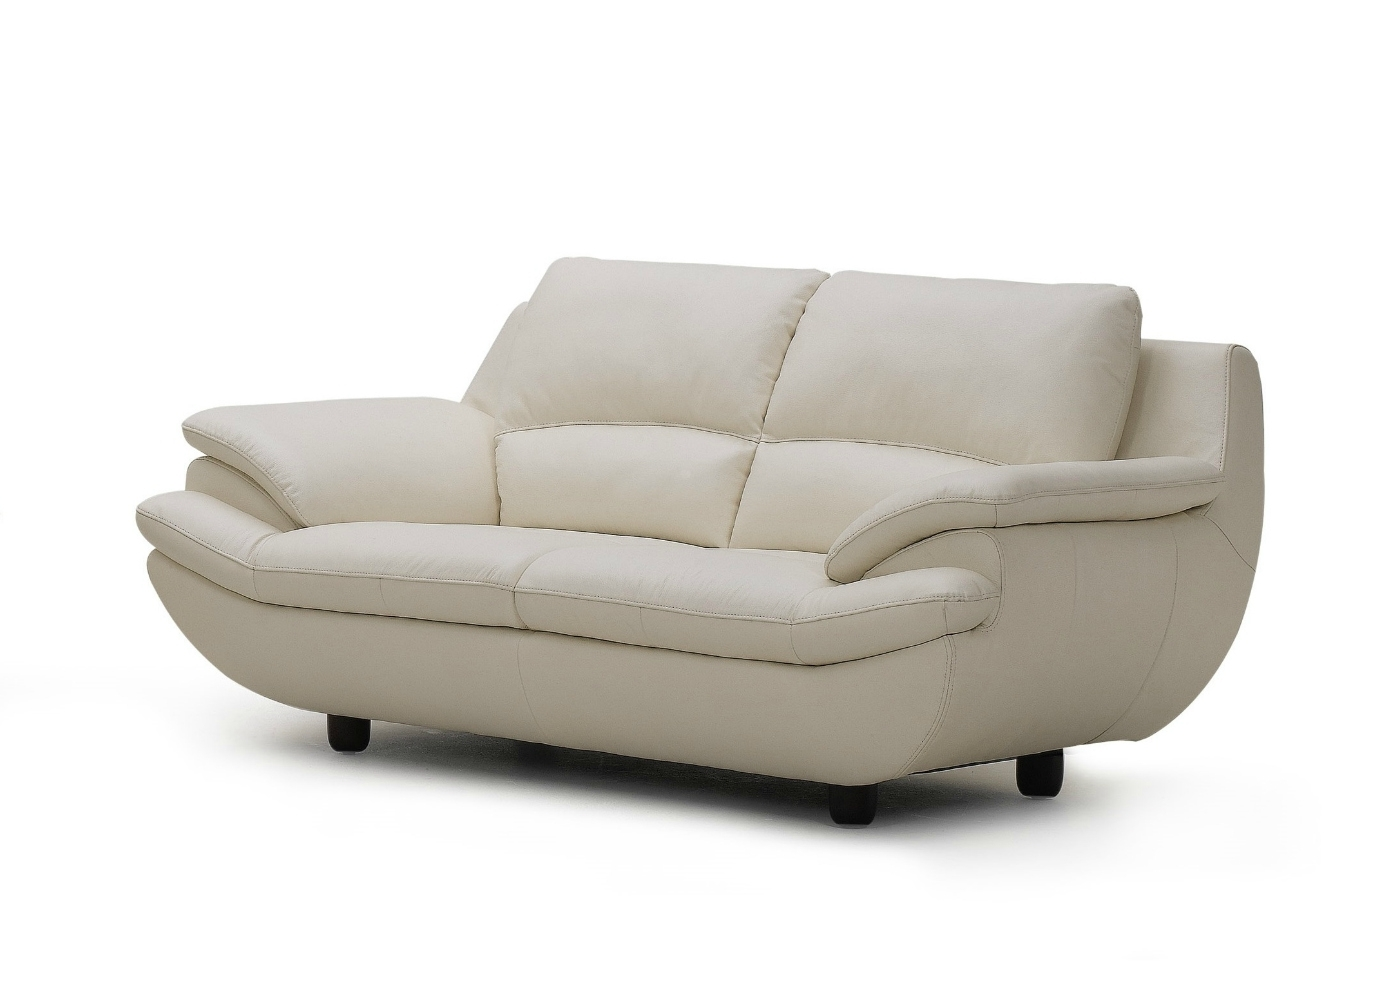 Off White Leather Sofas Pertaining To Newest Plush Leather Sofa In Off White – Not Just Brown (View 9 of 20)